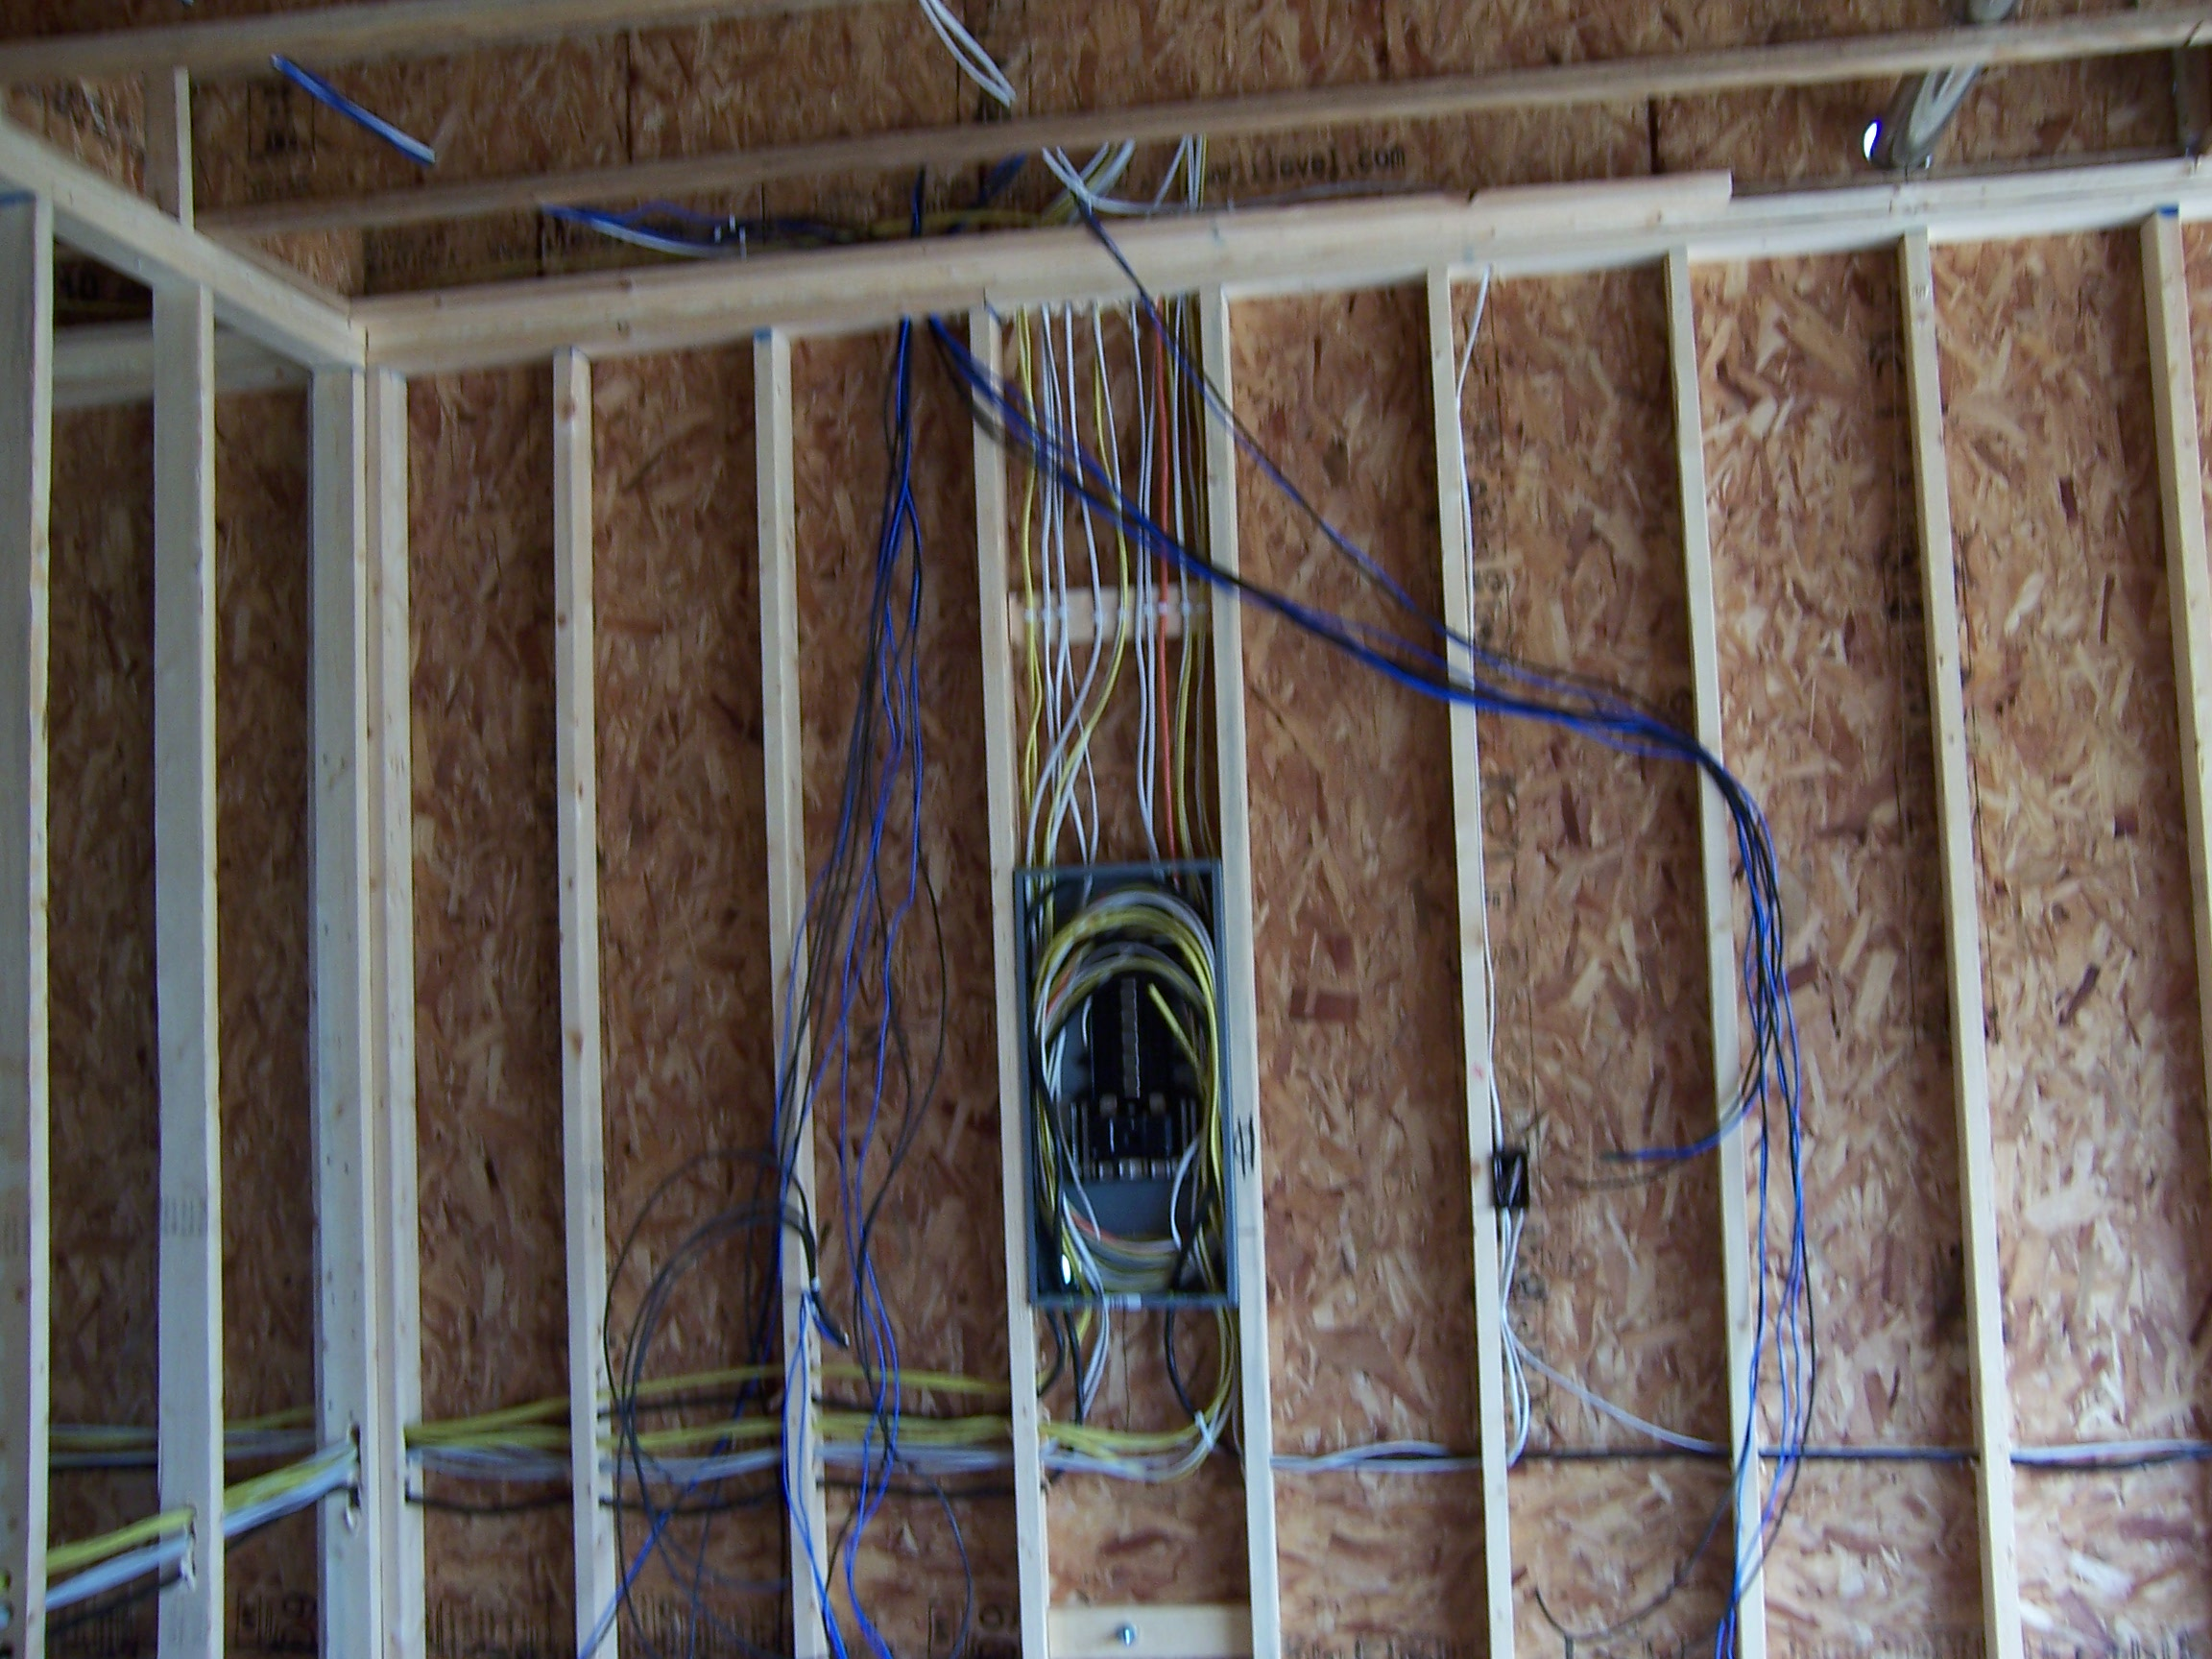 Wiring-and-unfinished-panel